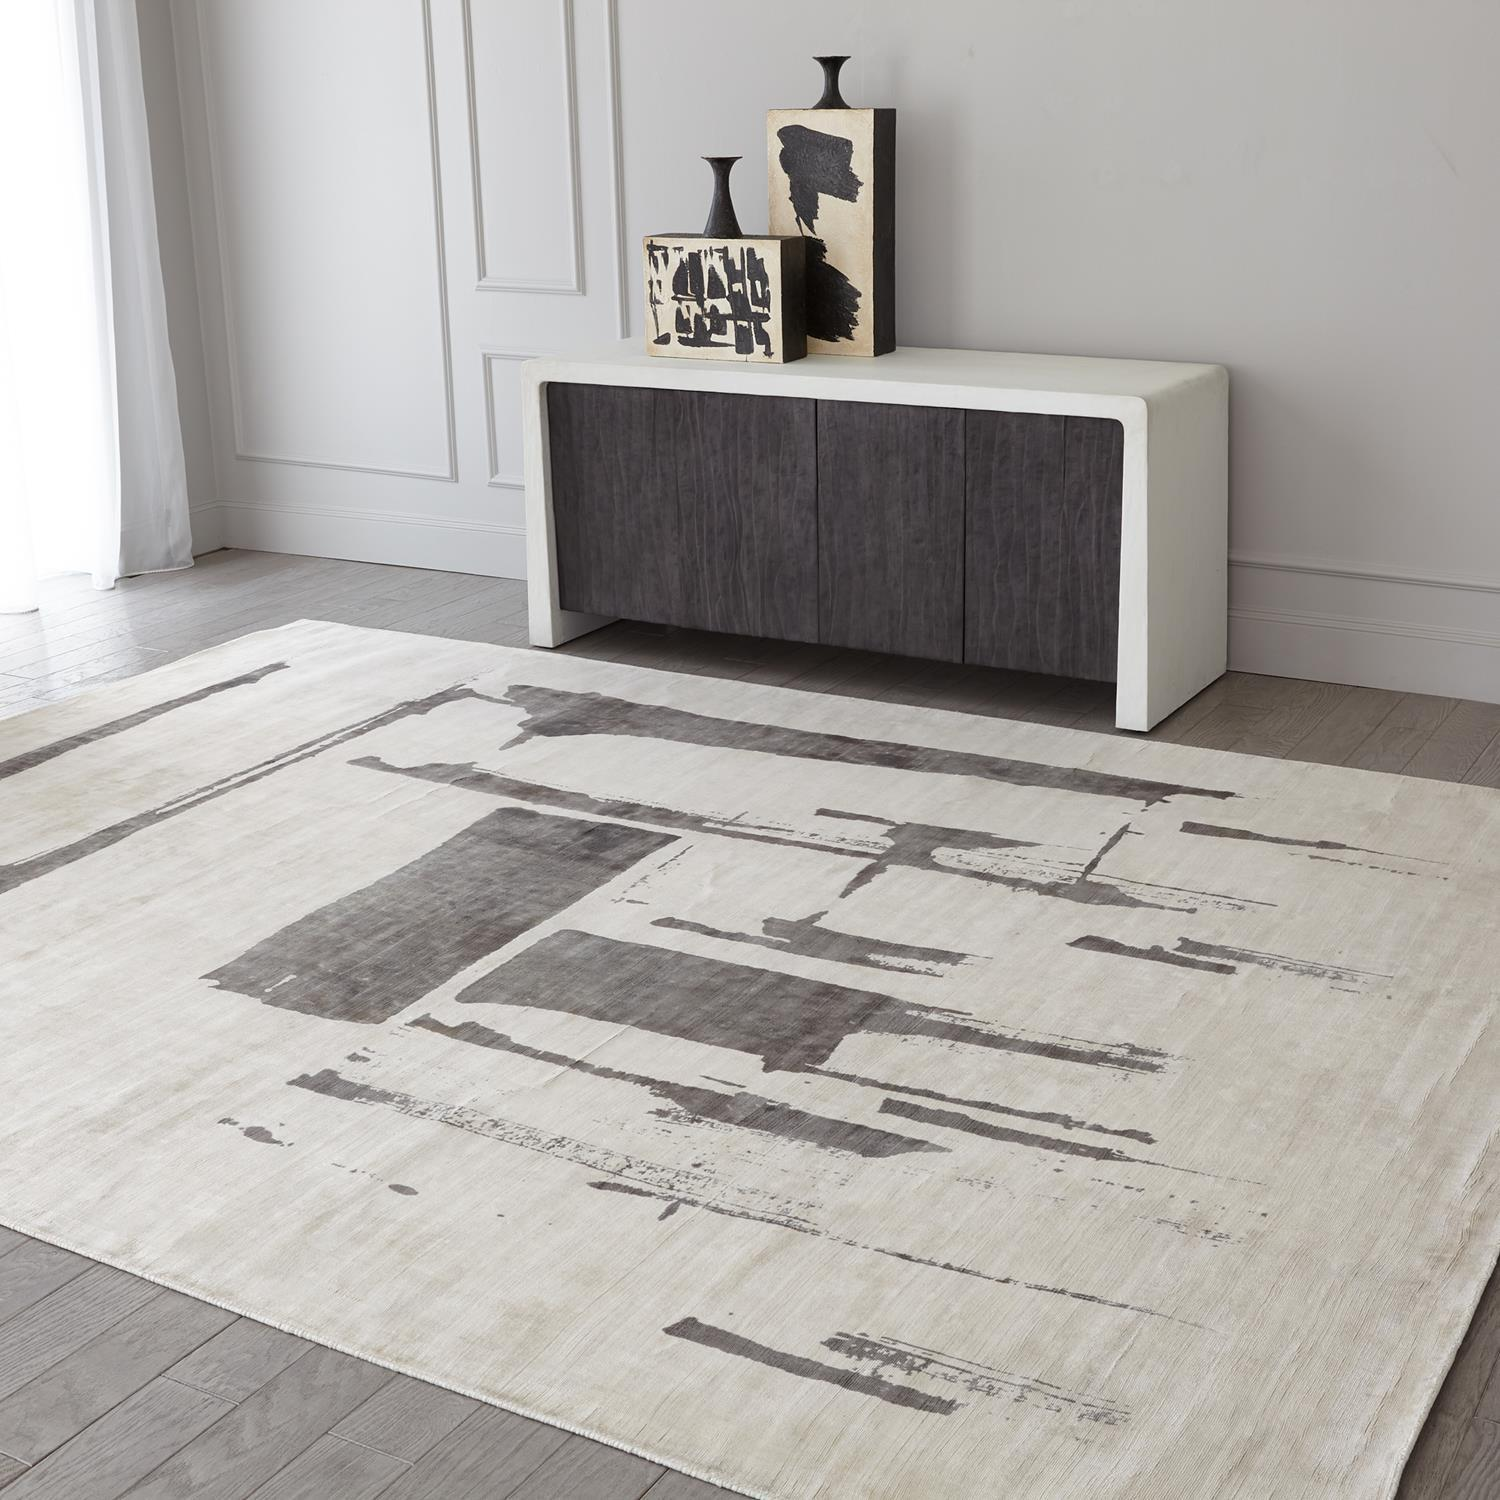 Global Views Edifice Rug-Cream/Charcoal-6' x 9'